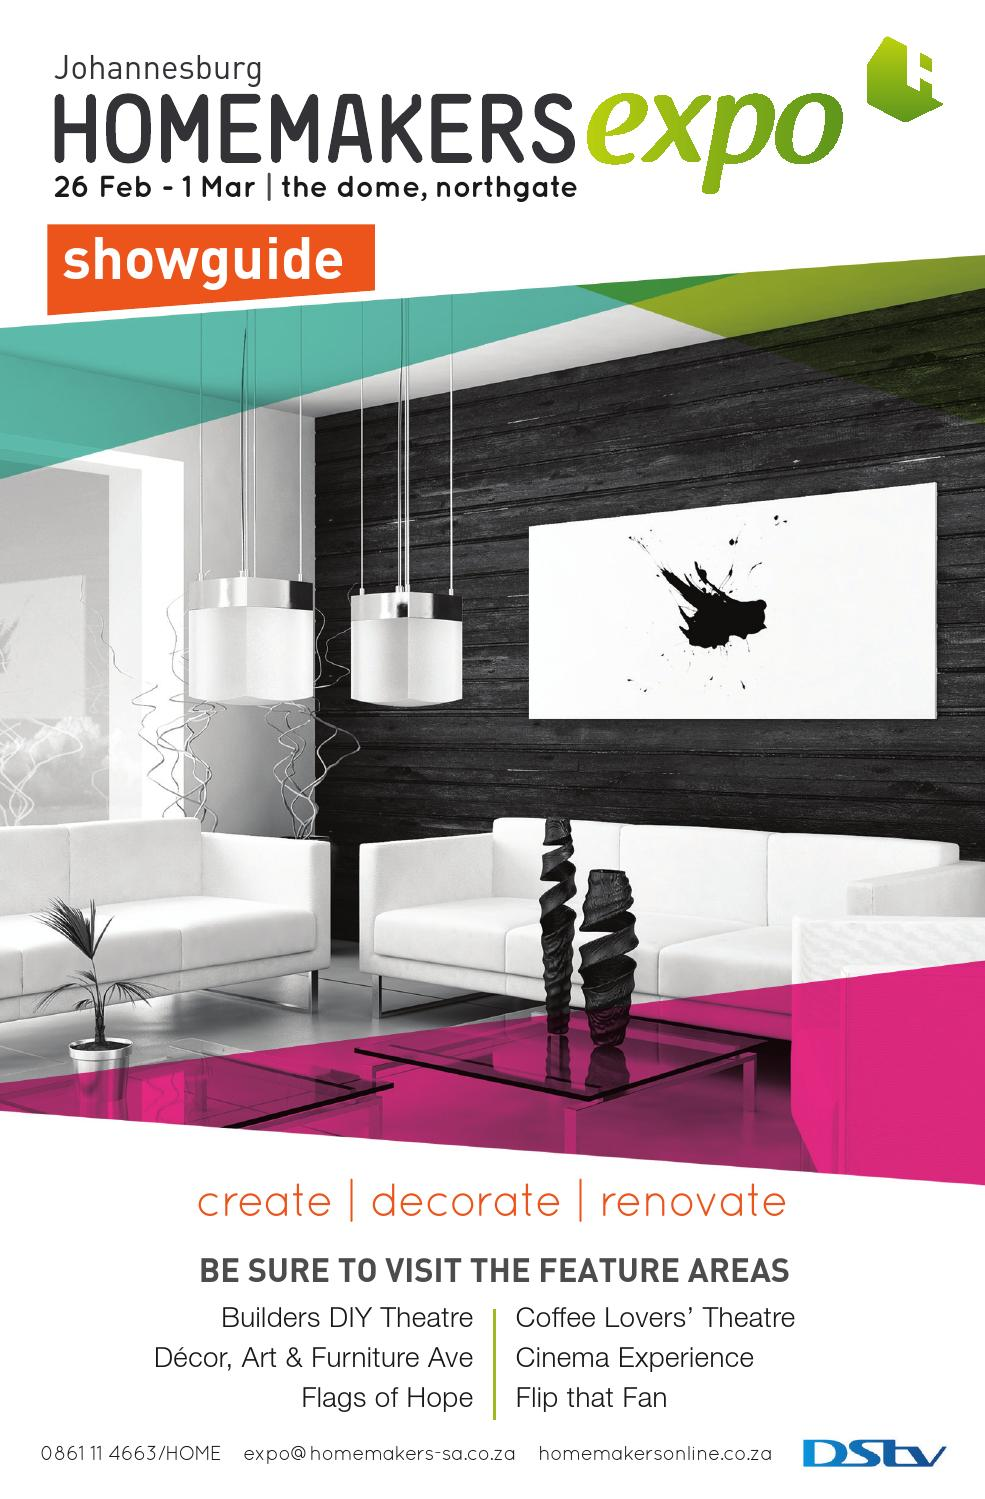 Johannesburg Homemakers Expo Showguide 2015 By Homemakers